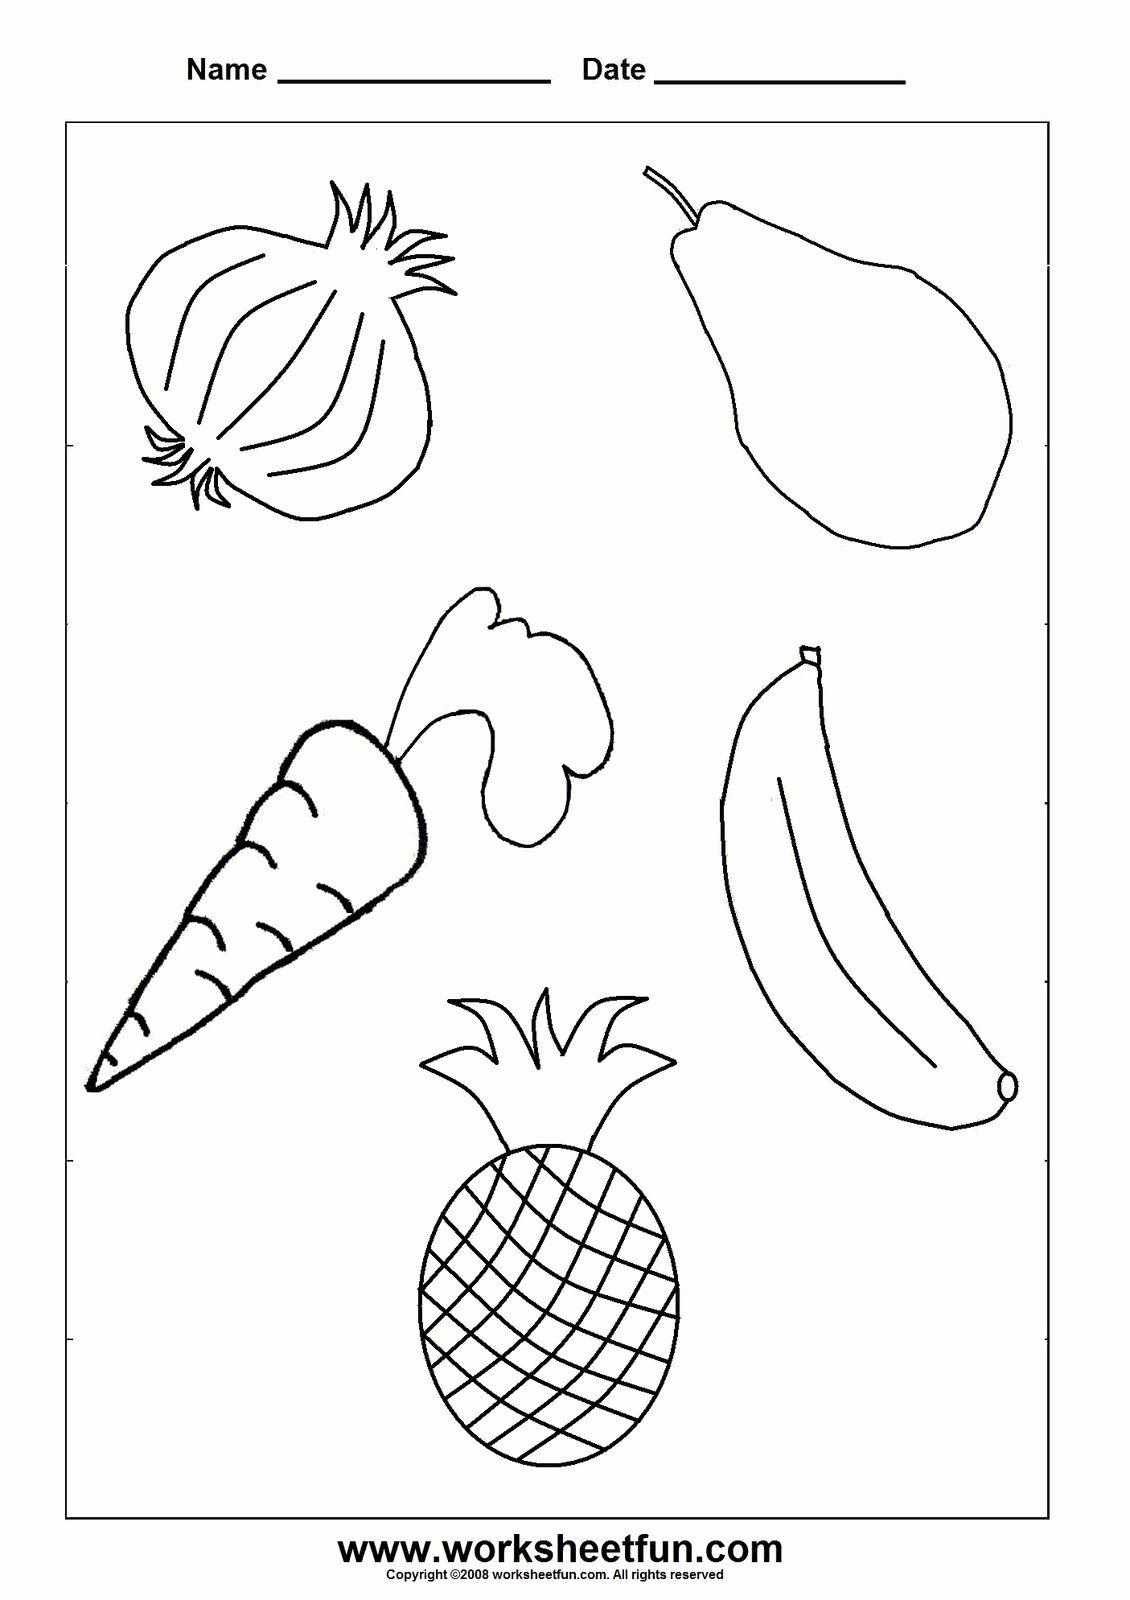 Worksheets for Preschoolers On Fruits and Vegetables Free Тема My Food садочок